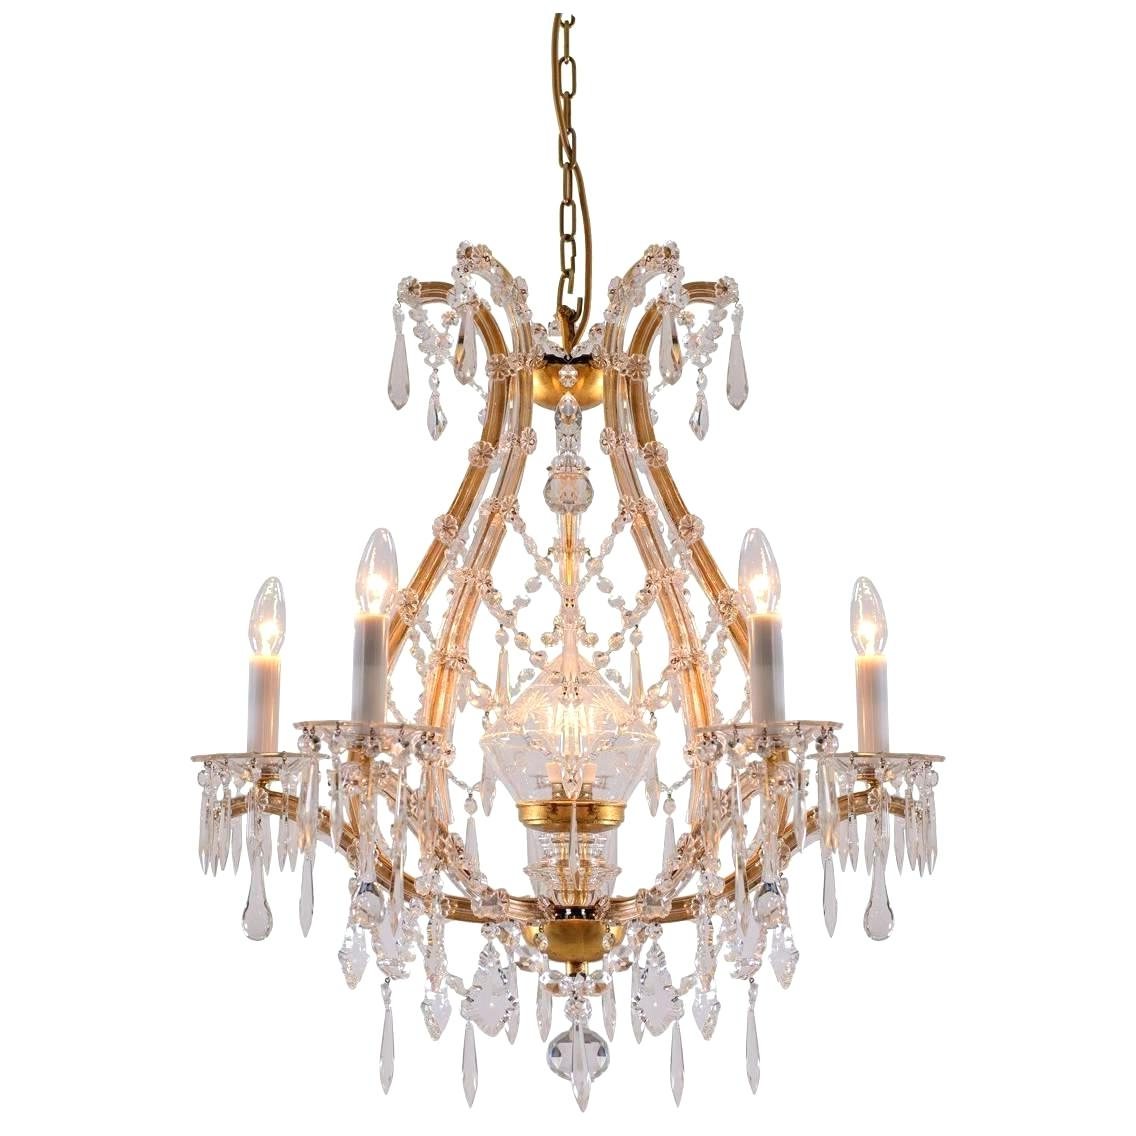 Most Popular Iron And Crystal Chandelier – Ozieaquilar (View 15 of 25)